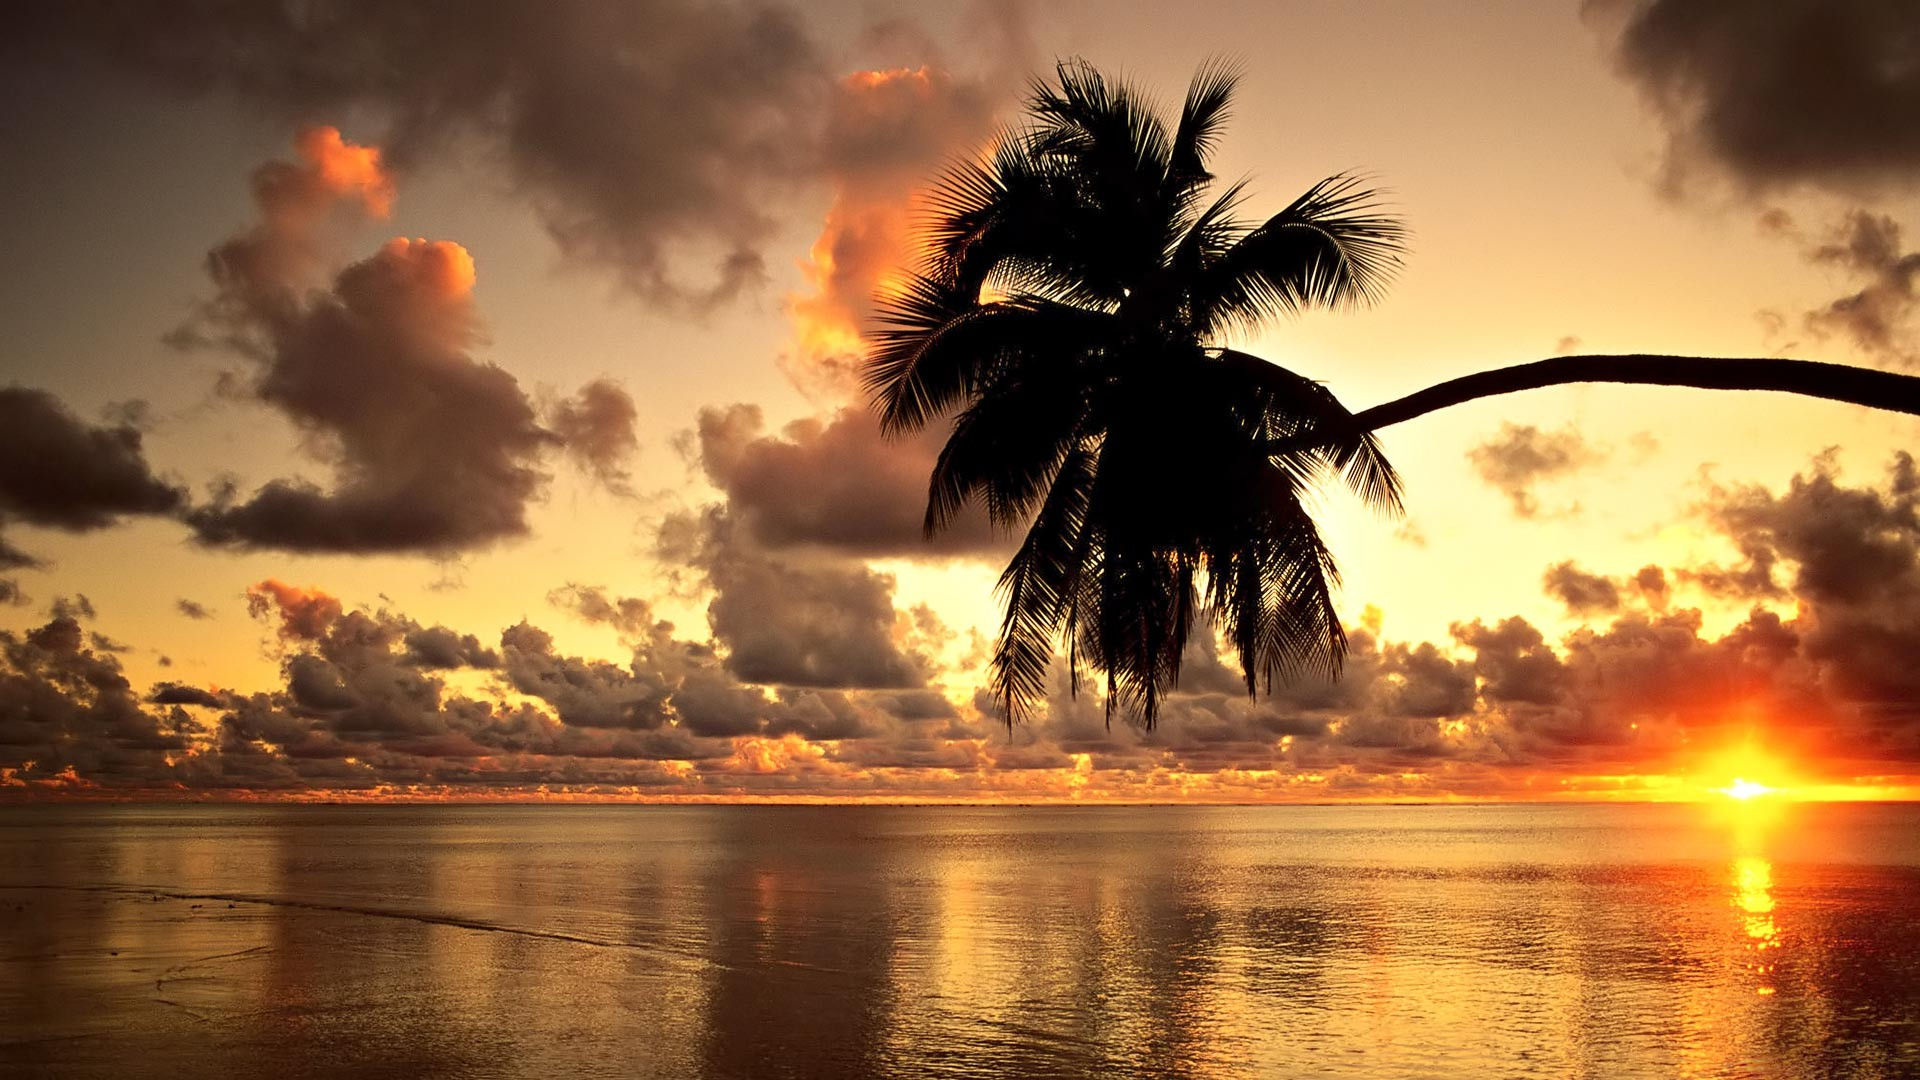 Cute palm trees wallpaper  Girly wallpapers  Pinterest  Trees 1920x1080